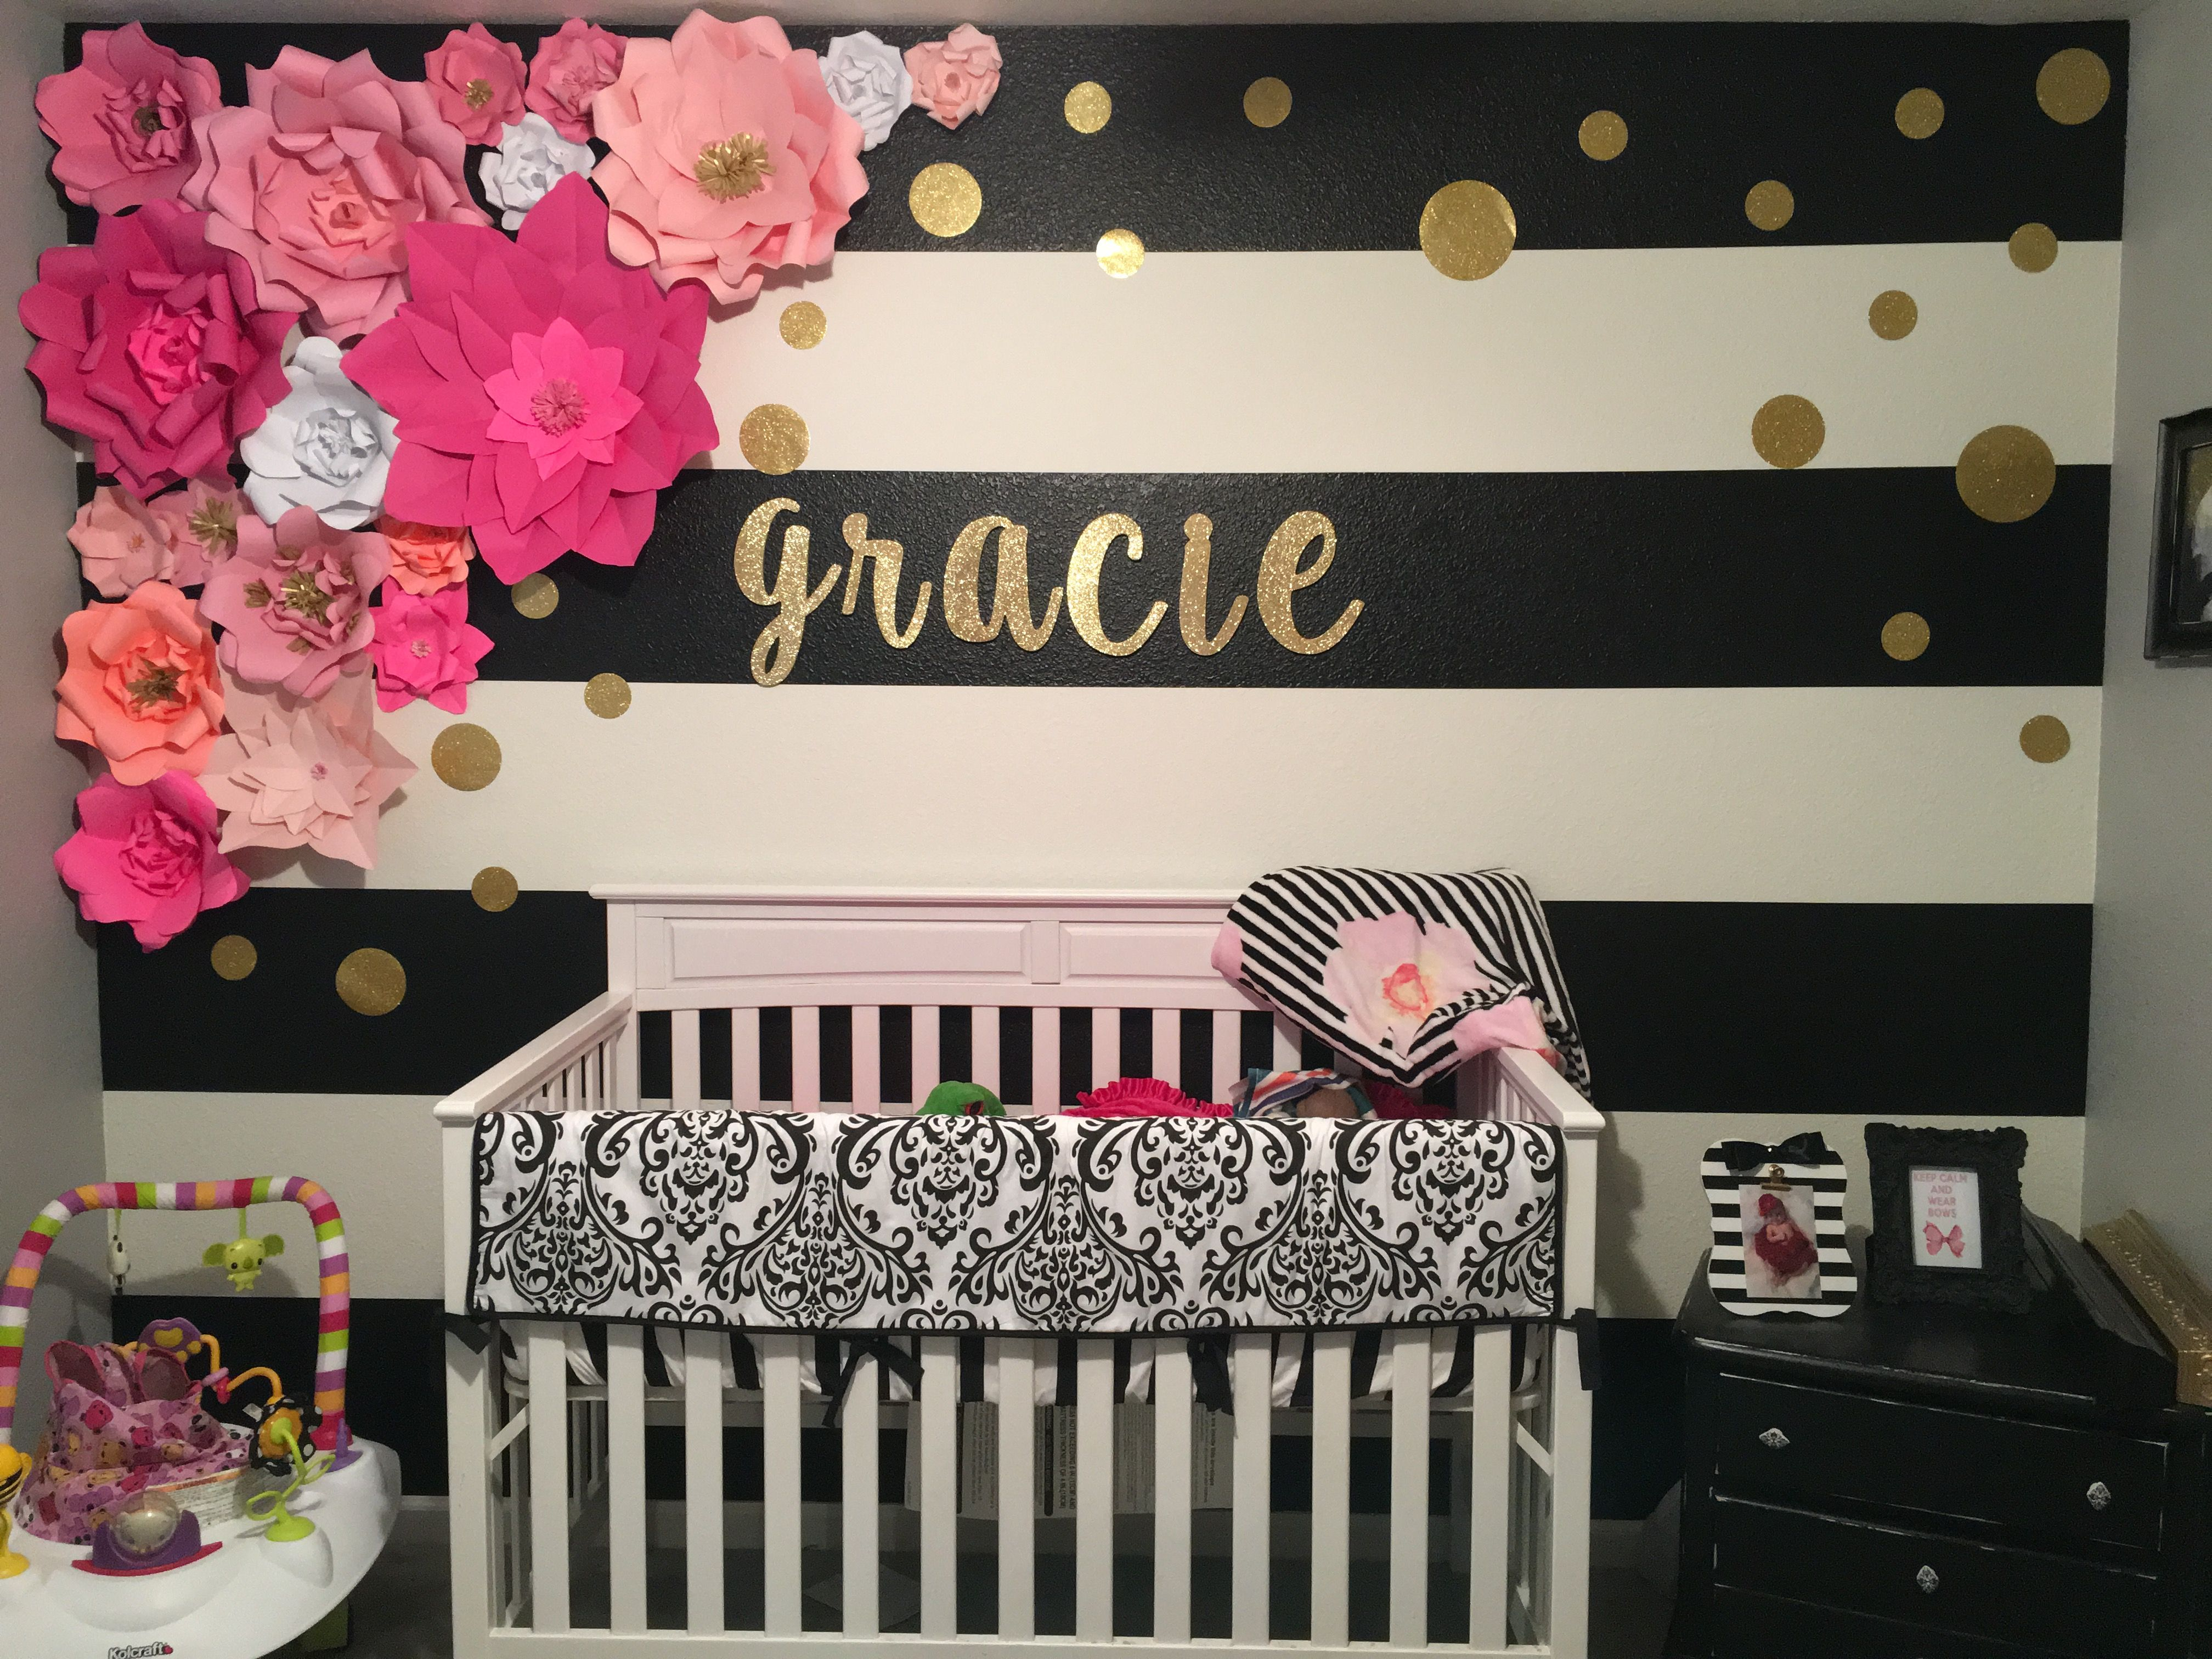 Baby Girl Room Ideas Pink And Black kate spade themed room. large paper flowers. black and white striped